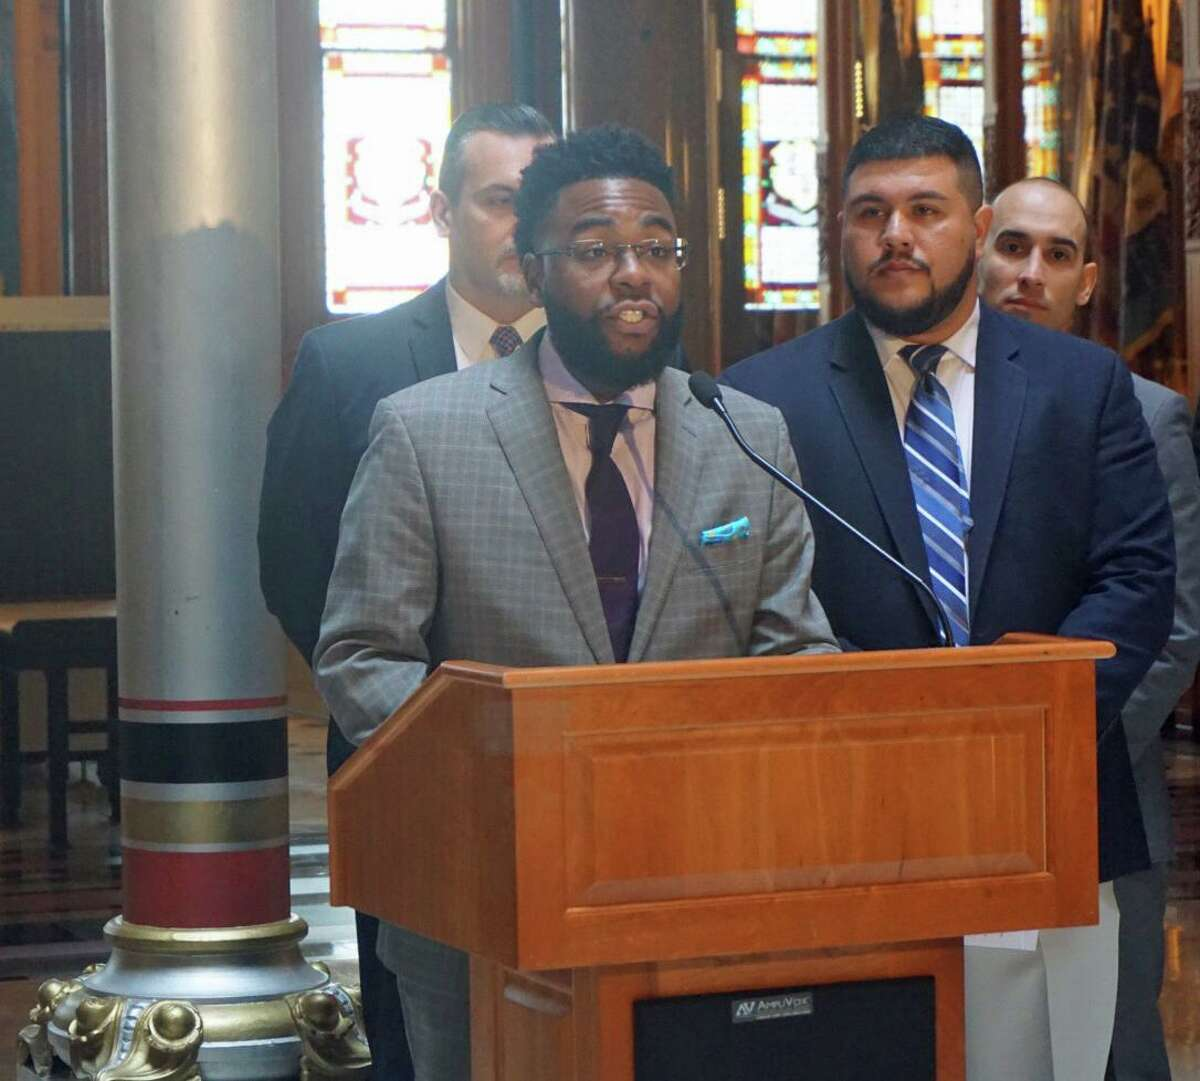 State Rep. Brandon McGee, D-Hartford, co-chairman of the legislative Housing Committee, with Rep. Chris Rosario, D-Bridgeport, in a 2018 file photo.